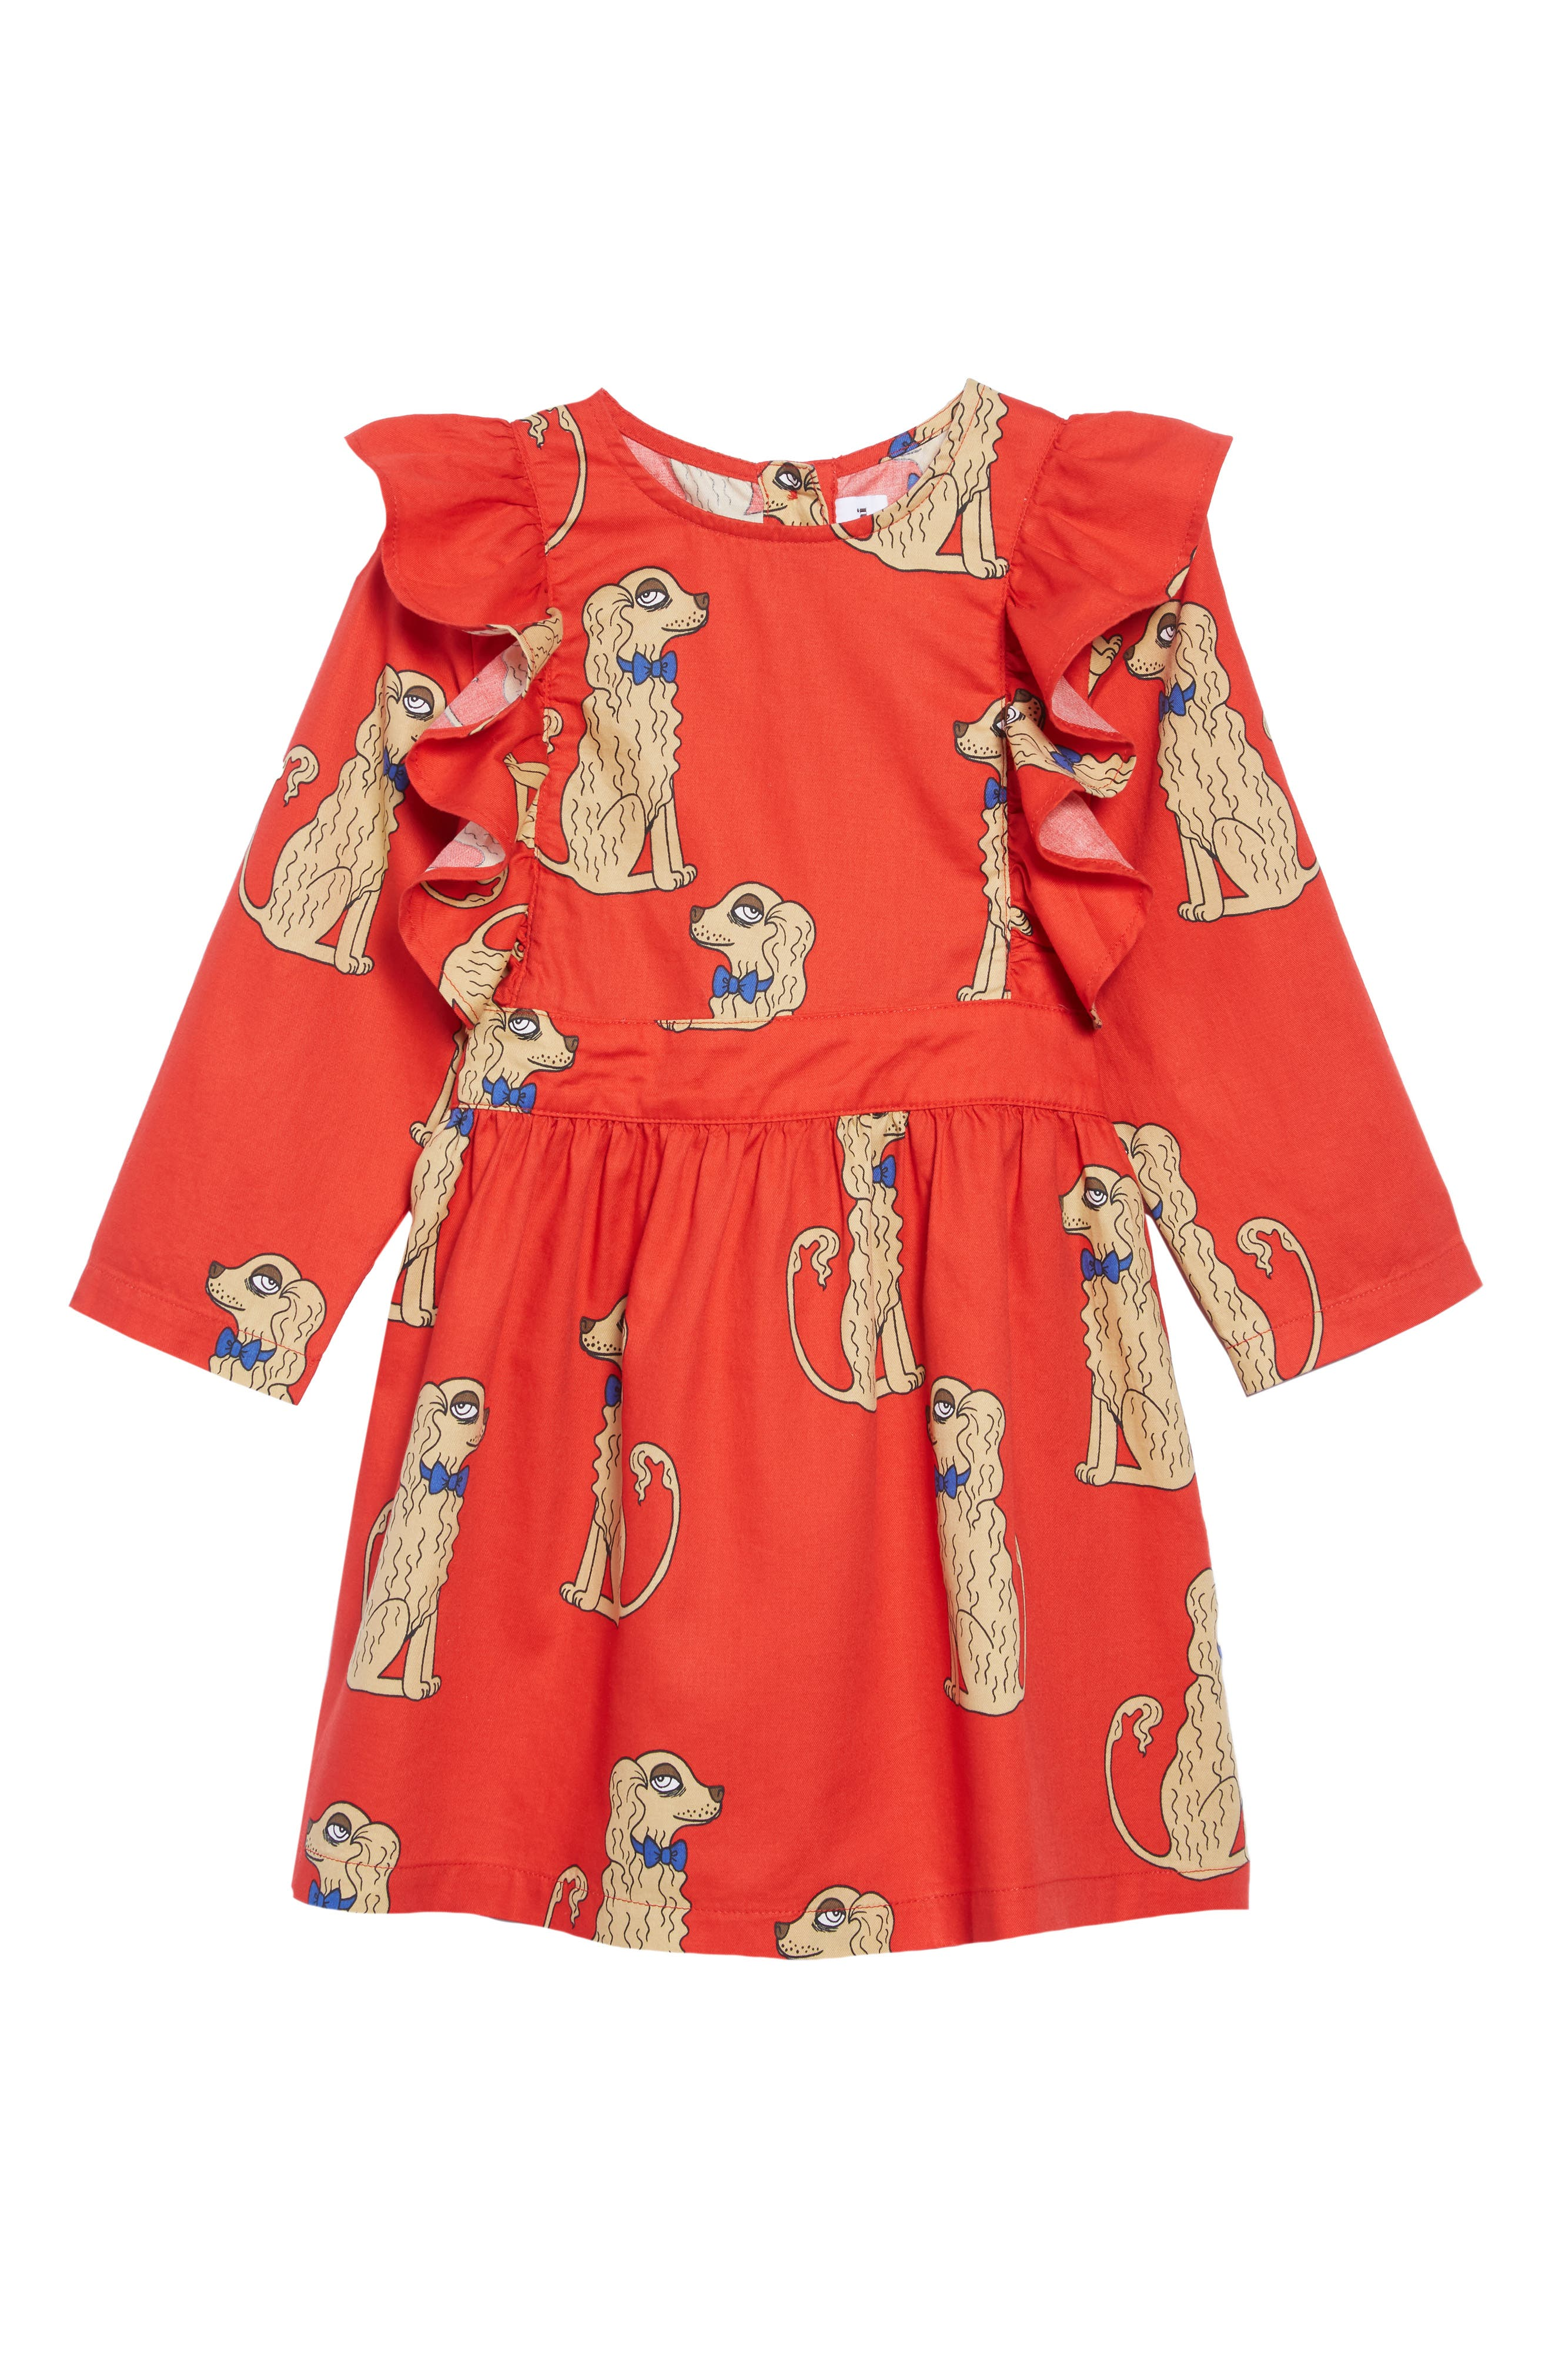 Spaniels Ruffle Dress,                         Main,                         color, Red